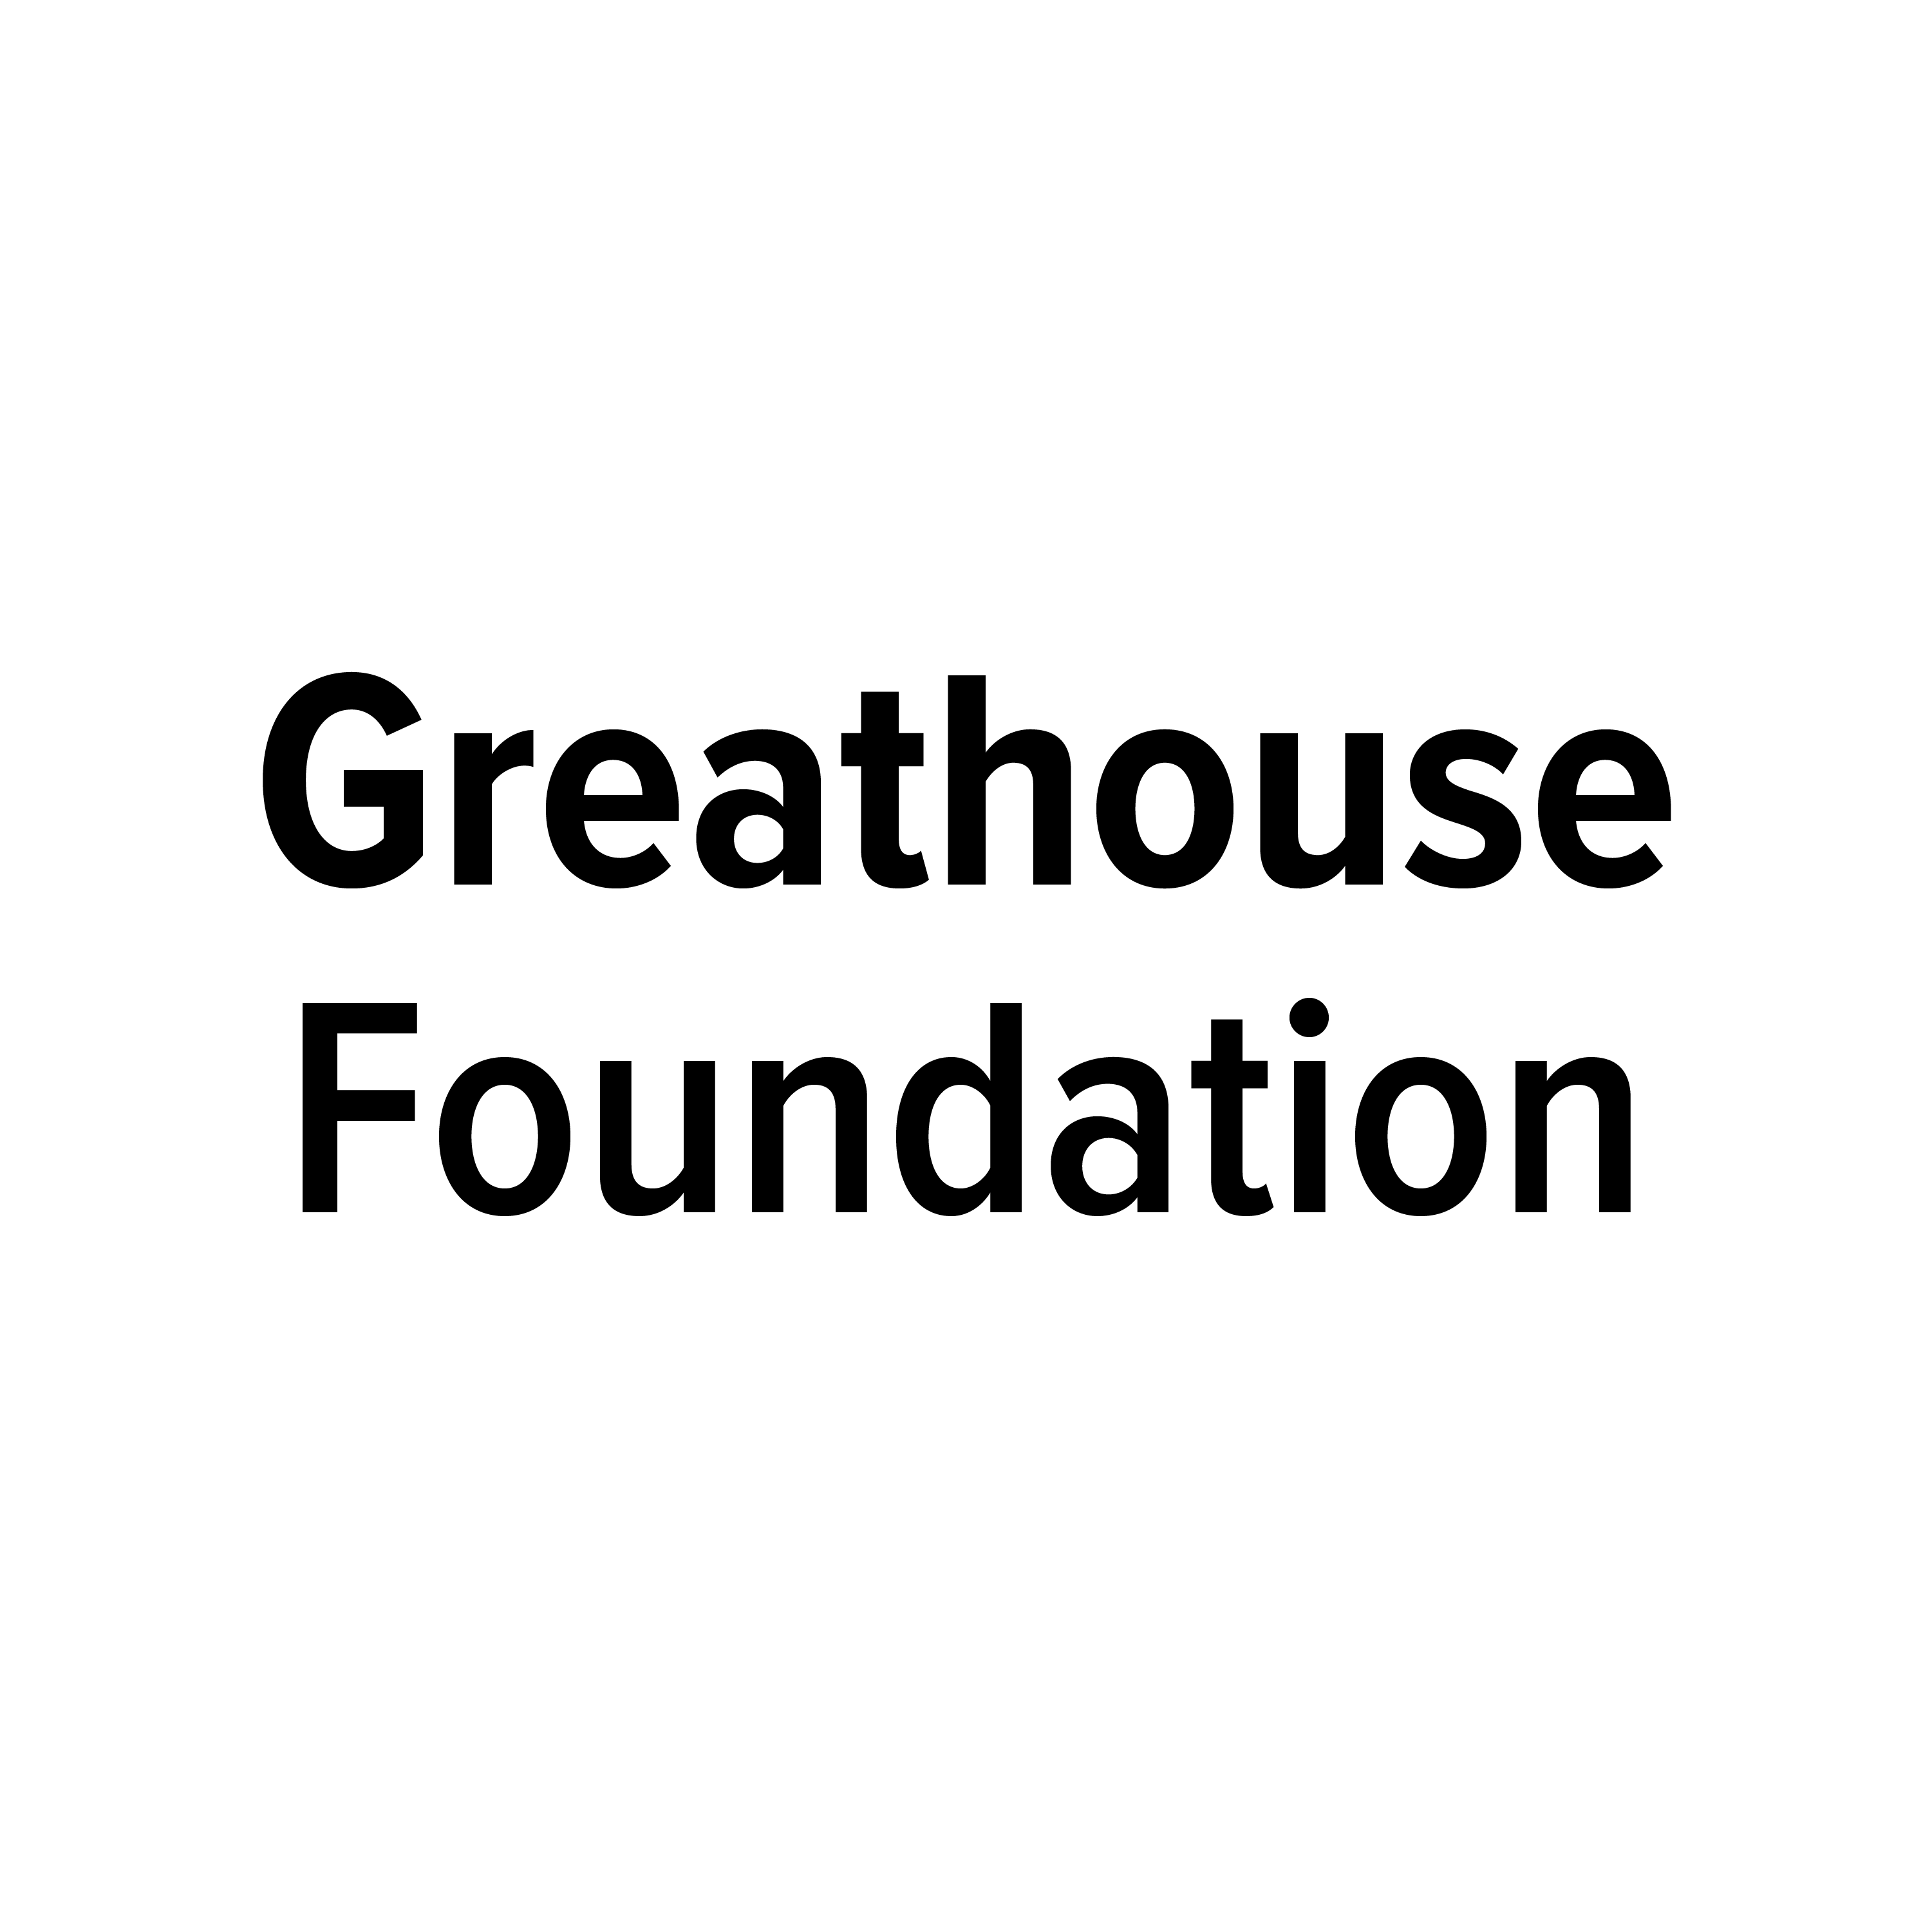 Greathouse